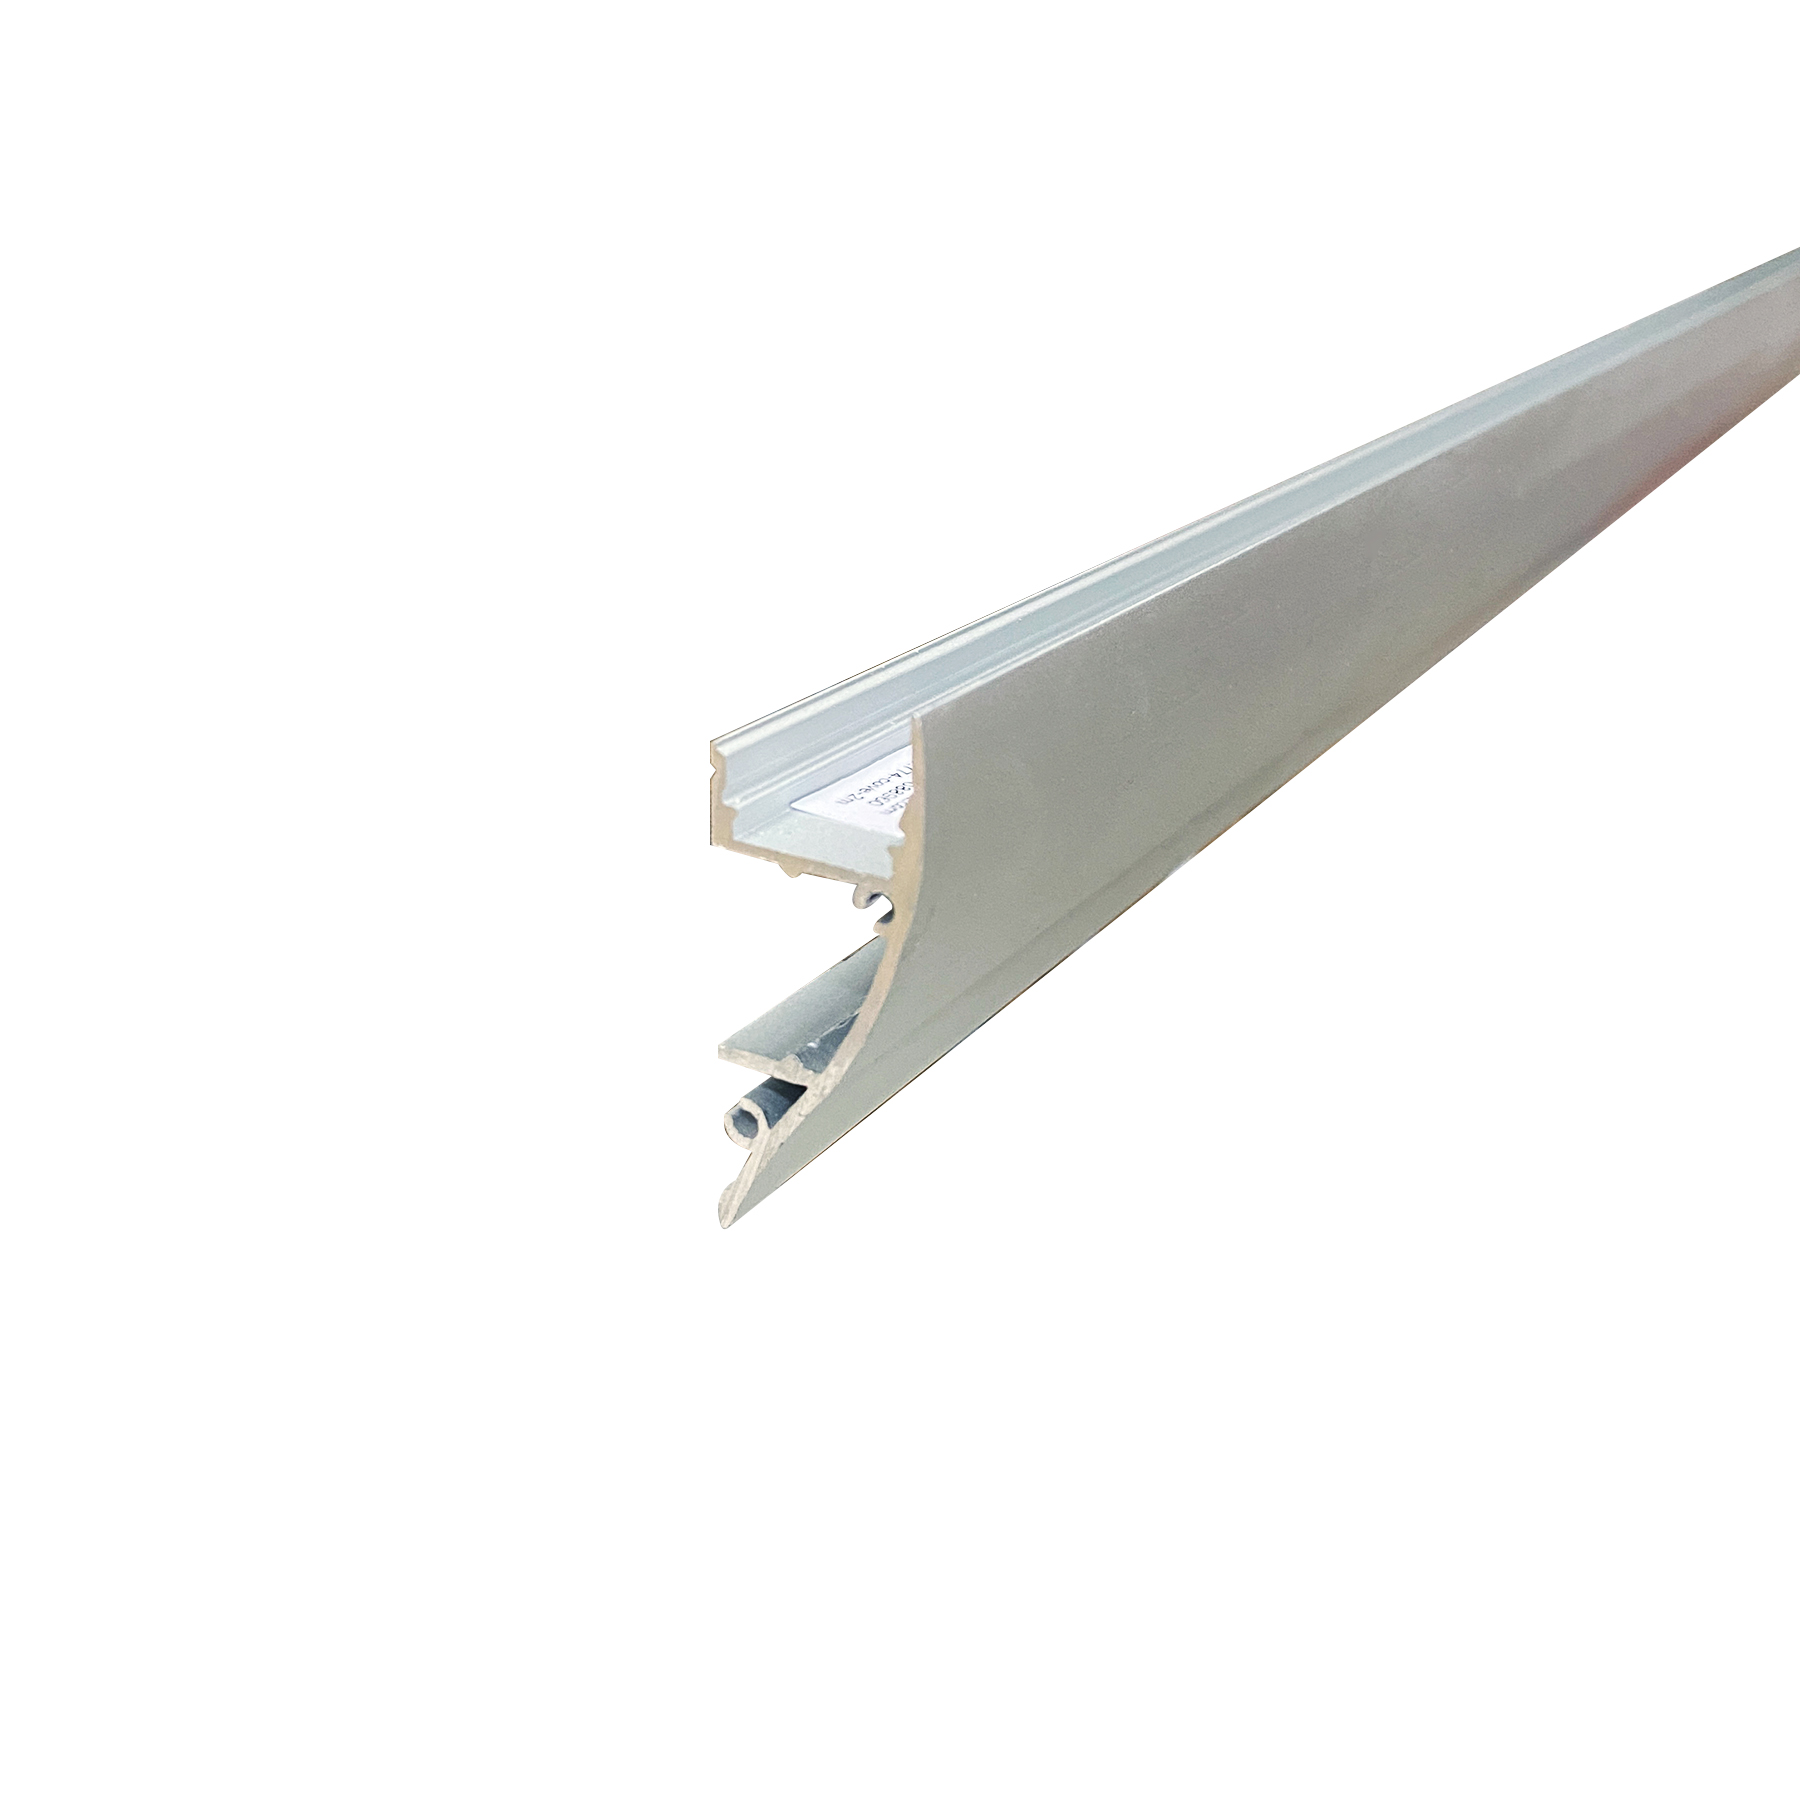 Cove Channel for LED Strip